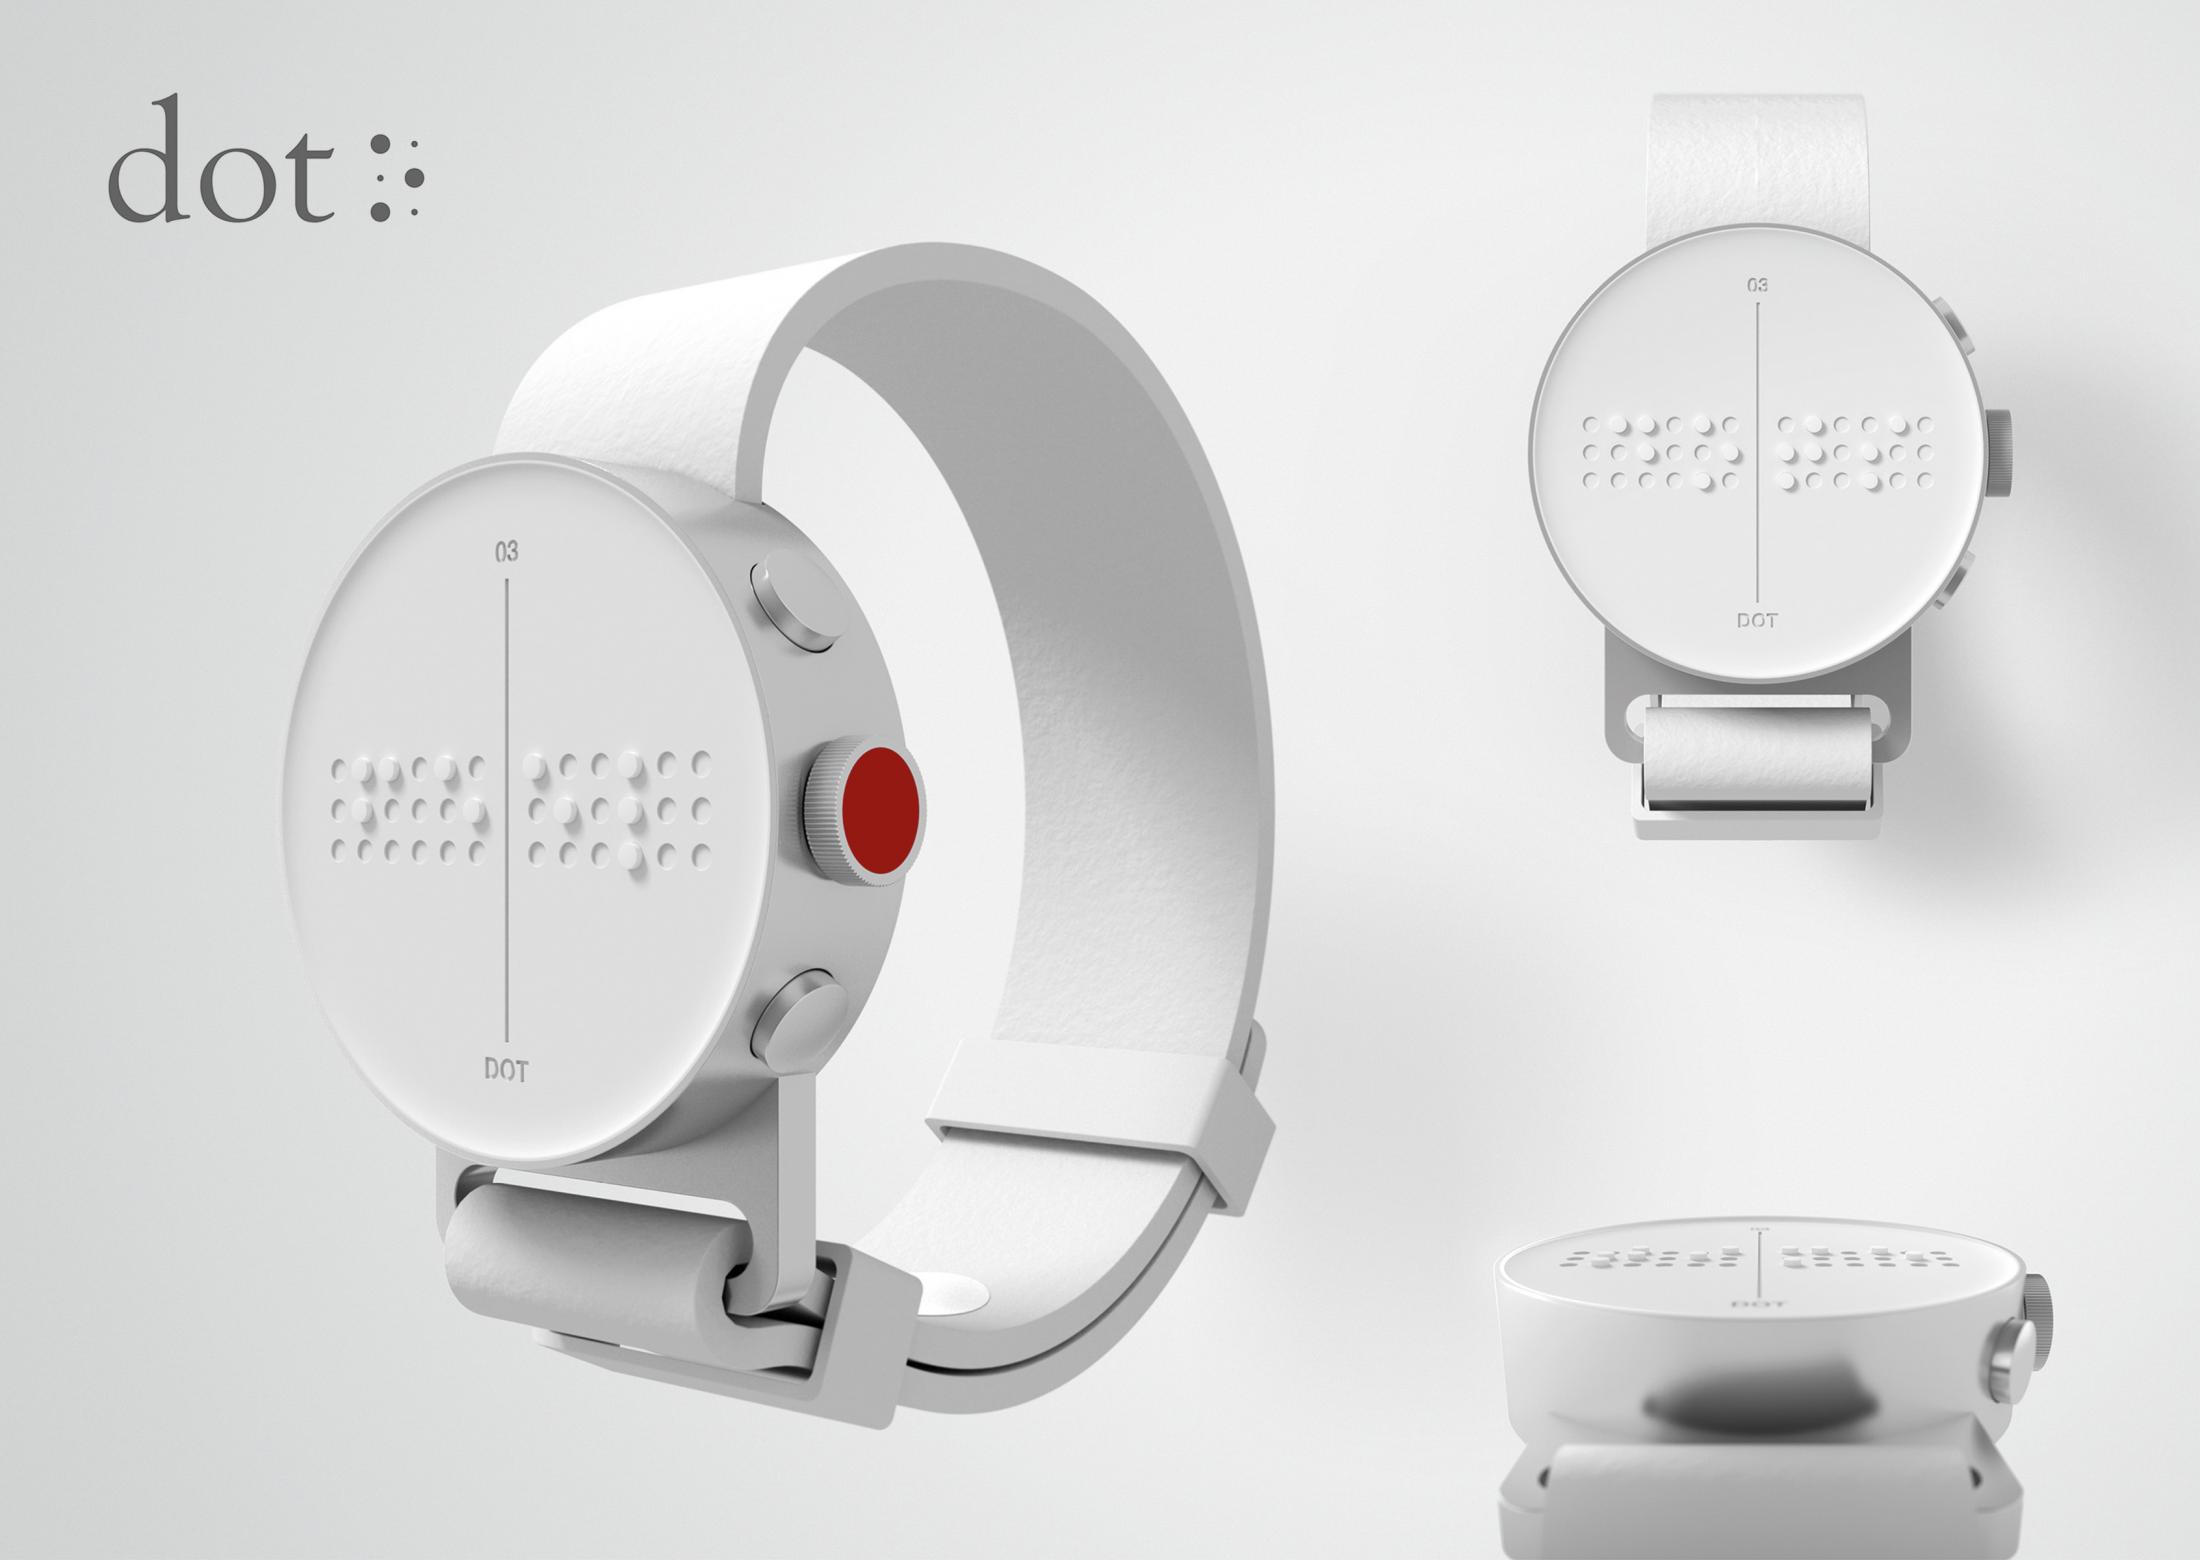 Thumbnail for DOT. The first Braille Smartwatch